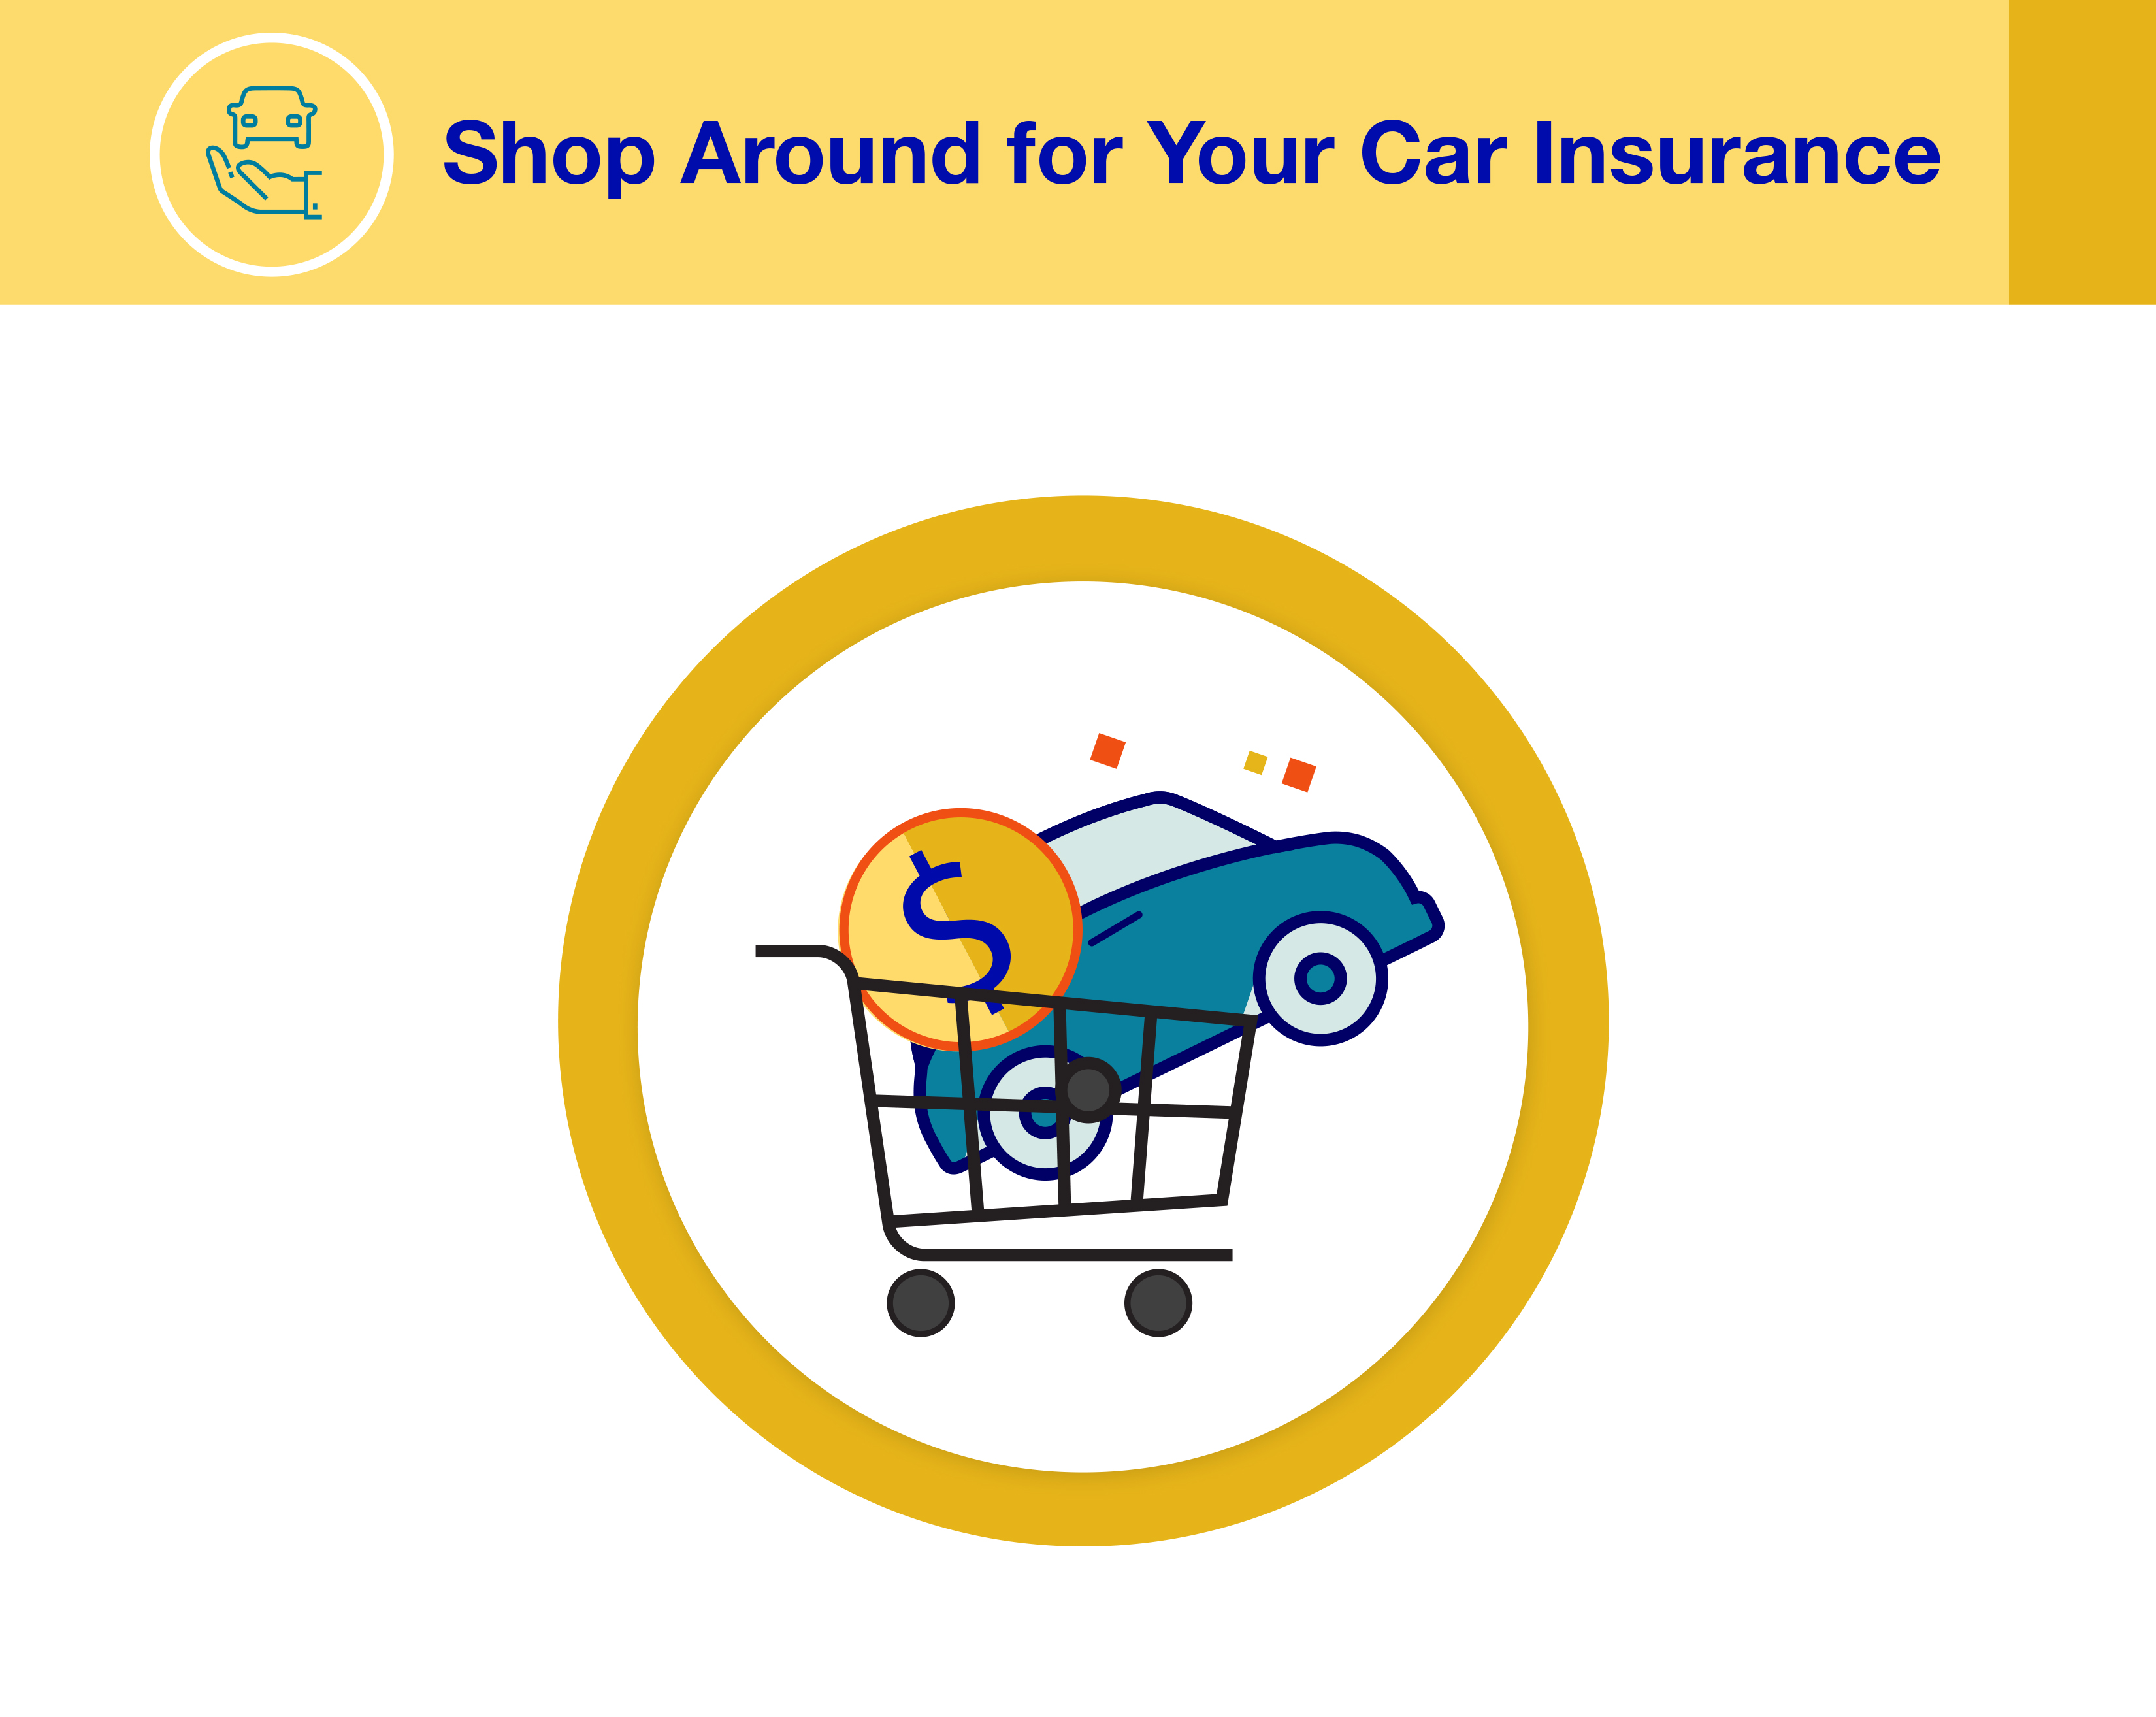 Shop around for your car insurance